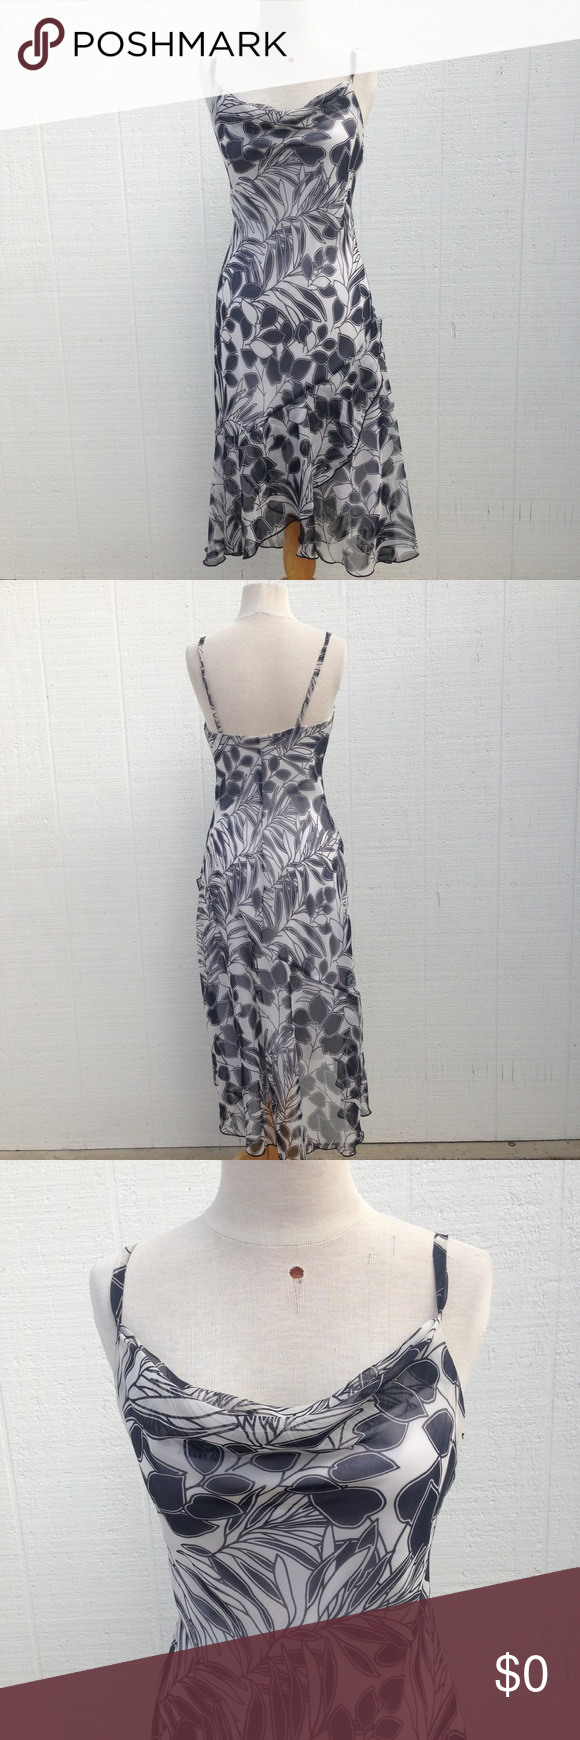 B smart black and white evening dress dresses and conditioner